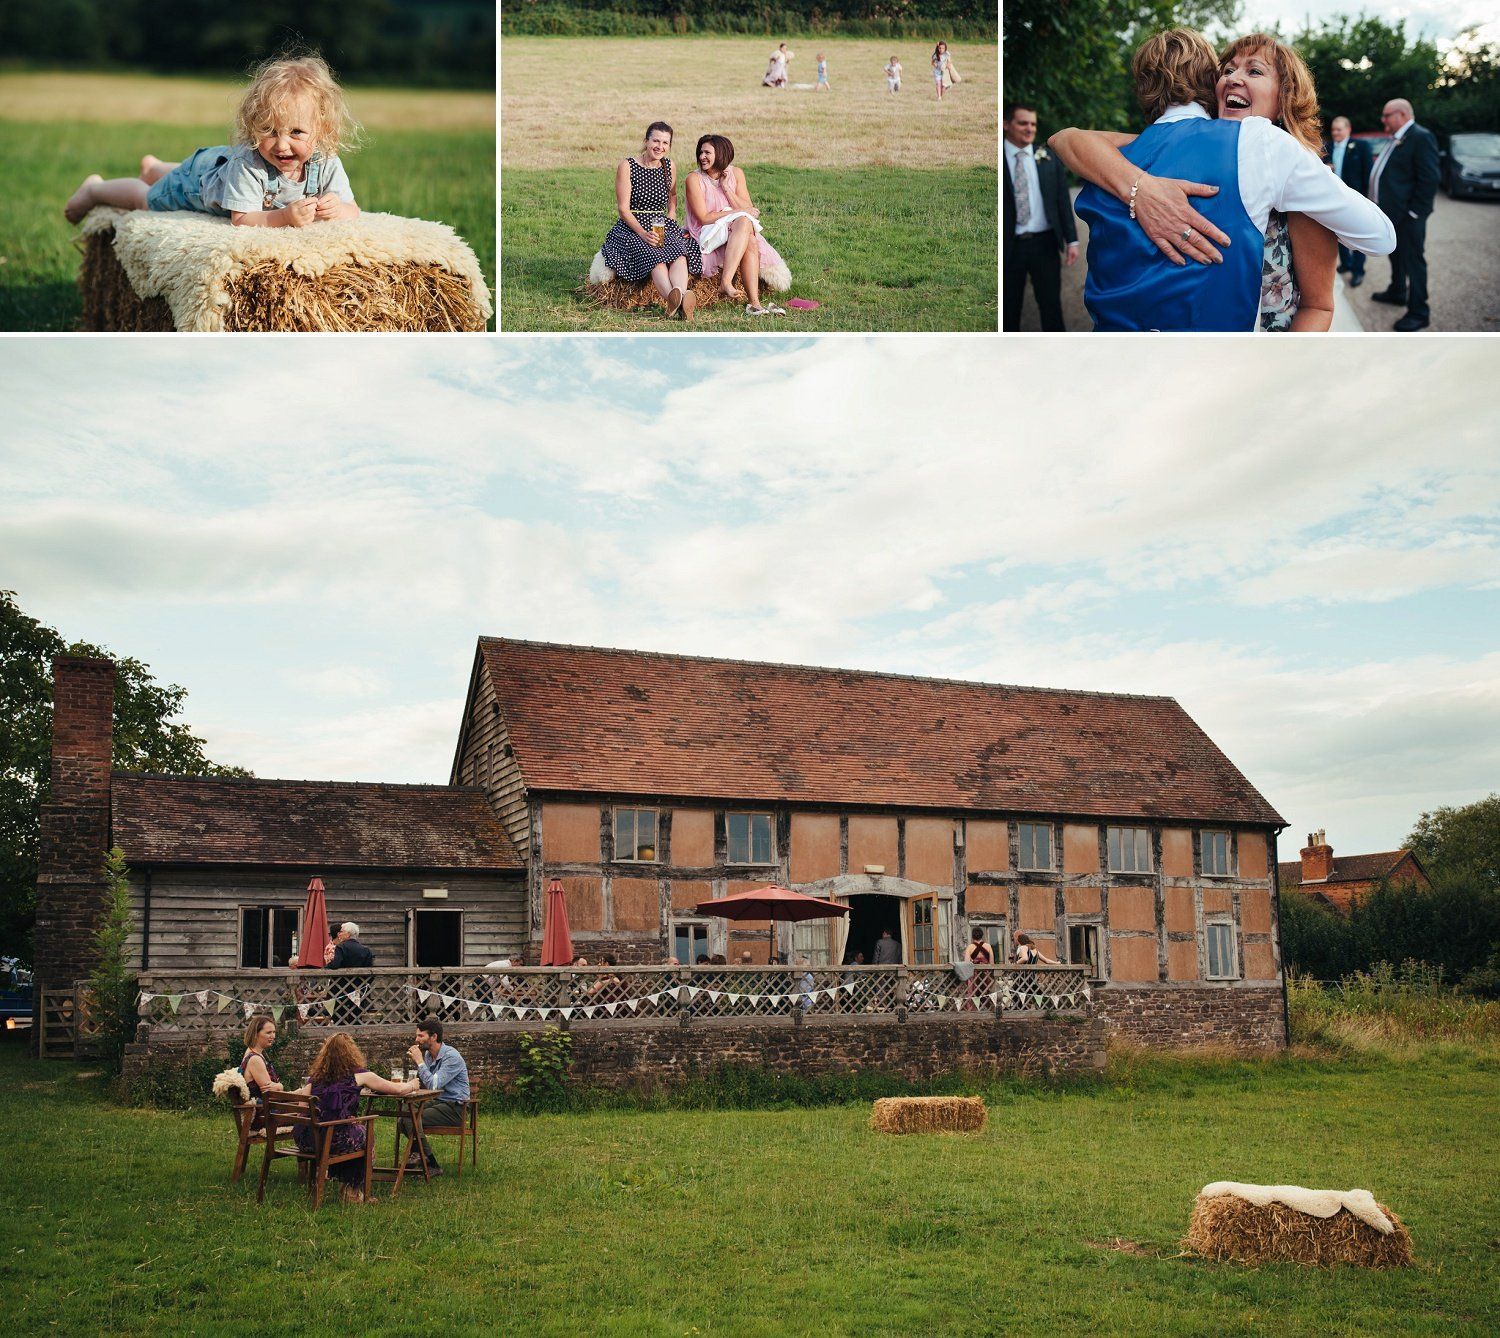 Haybales and a wedding in the middle of nature